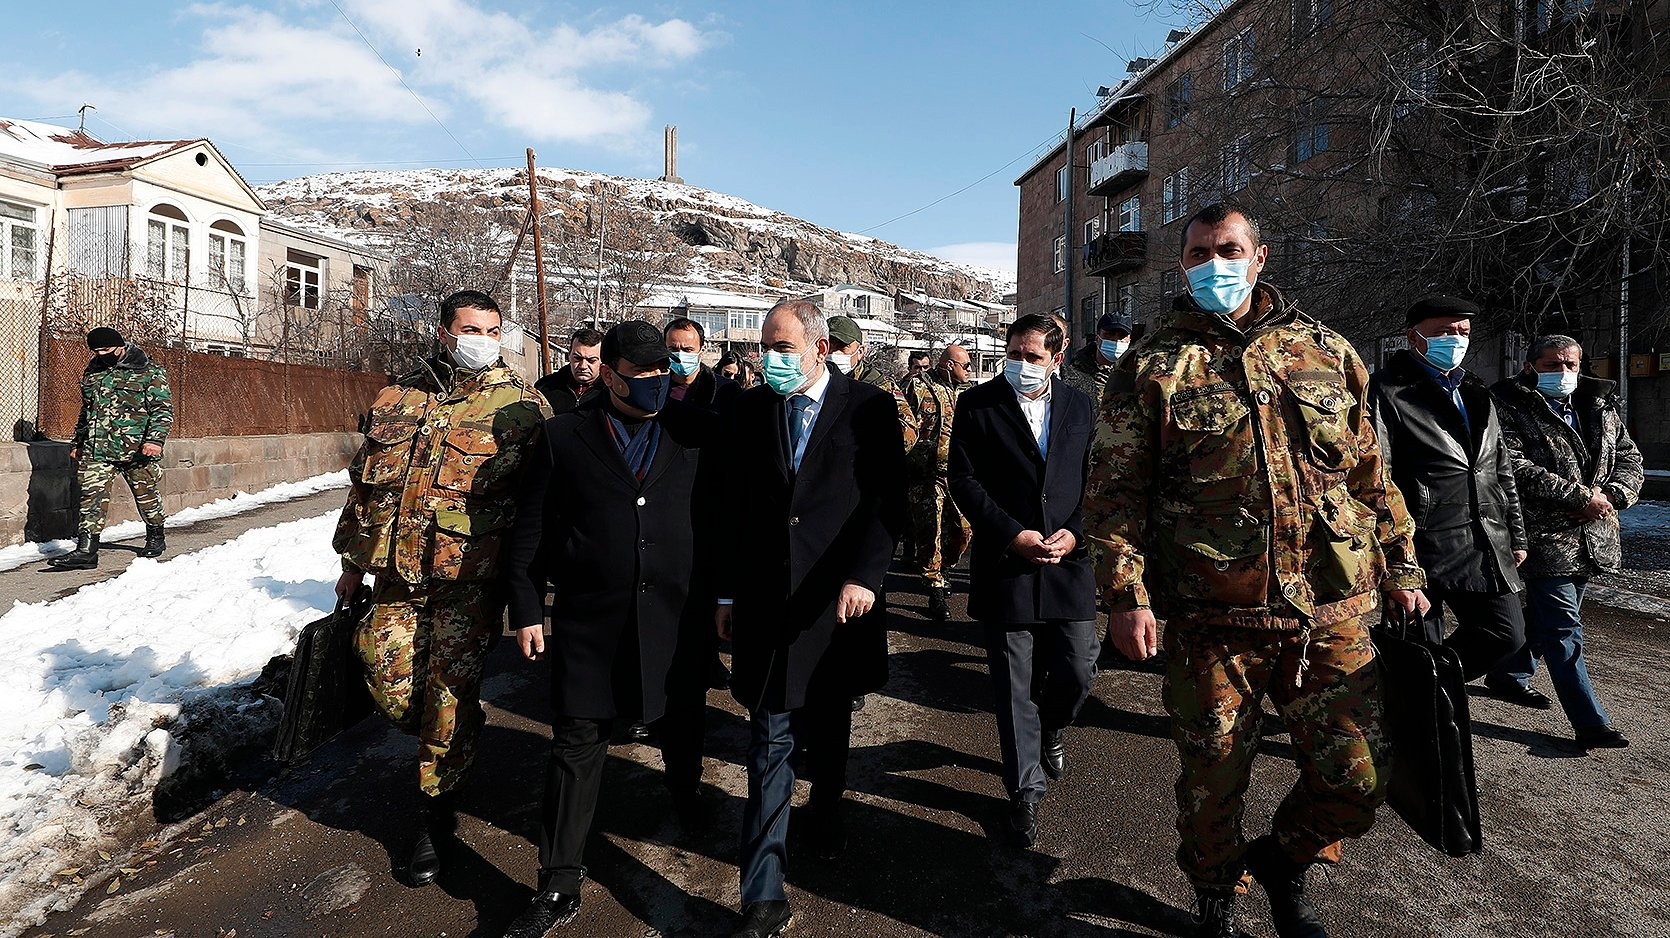 epa08897899 A handout photo made available by the press office of Armenian government shows Armenian Prime Minister Nikol Pashinyan (C) walks on a street in Sisian, Syunik region, Armenia, on the third day of the nationwide mourning 21 December 2020. Armenian Prime Minister Nikol Pashinyan declared a 3-day nationwide mourning period starting on December 19 for people who had been killed in the latest armed conflict between Azerbaijan and Armenia over the Nagorno-Karabakh territory along the contact line of the self-proclaimed Nagorno-Karabakh Republic (also known as Artsakh).  EPA/ARMENIAN GOVERNMENT PRESS OFFICE HANDOUT MANDATORY CREDIT HANDOUT EDITORIAL USE ONLY/NO SALES